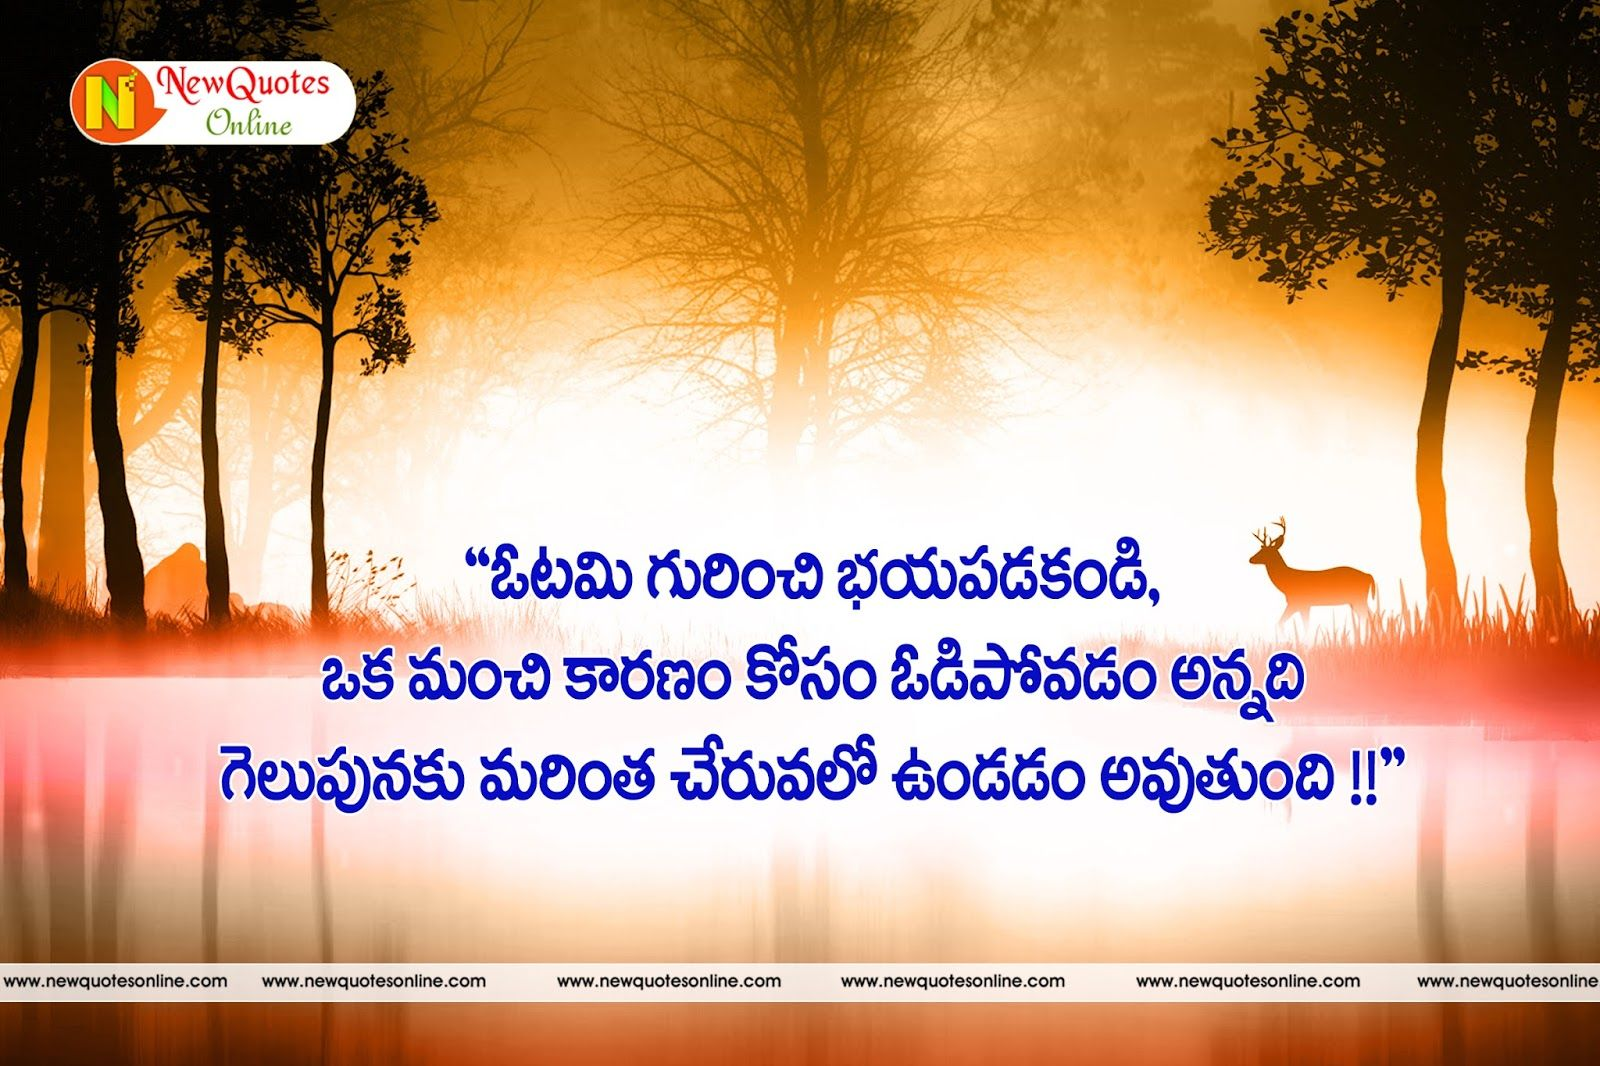 Best 25 Cruise Quotes Ideas On Pinterest: Best 25+ Telugu Inspirational Quotes Ideas On Pinterest